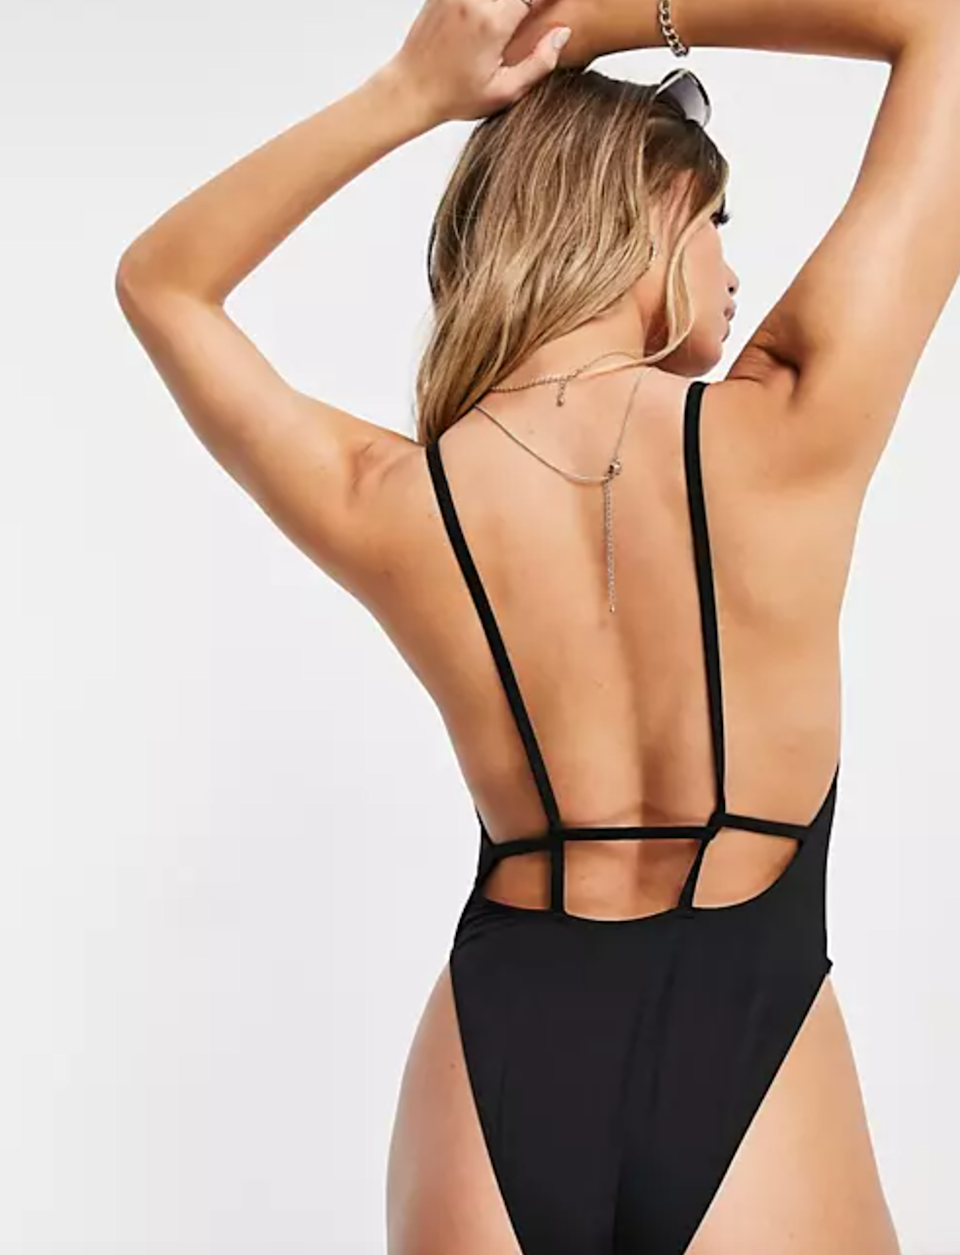 """<br><br><strong>ASOS DESIGN</strong> Recycled Twist Strappy Low Back Swimsuit, $, available at <a href=""""https://go.skimresources.com/?id=30283X879131&url=https%3A%2F%2Fwww.asos.com%2Fus%2Fasos-design%2Fasos-design-recycled-twist-strappy-low-back-swimsuit-in-black%2Fprd%2F20299325"""" rel=""""nofollow noopener"""" target=""""_blank"""" data-ylk=""""slk:ASOS"""" class=""""link rapid-noclick-resp"""">ASOS</a>"""